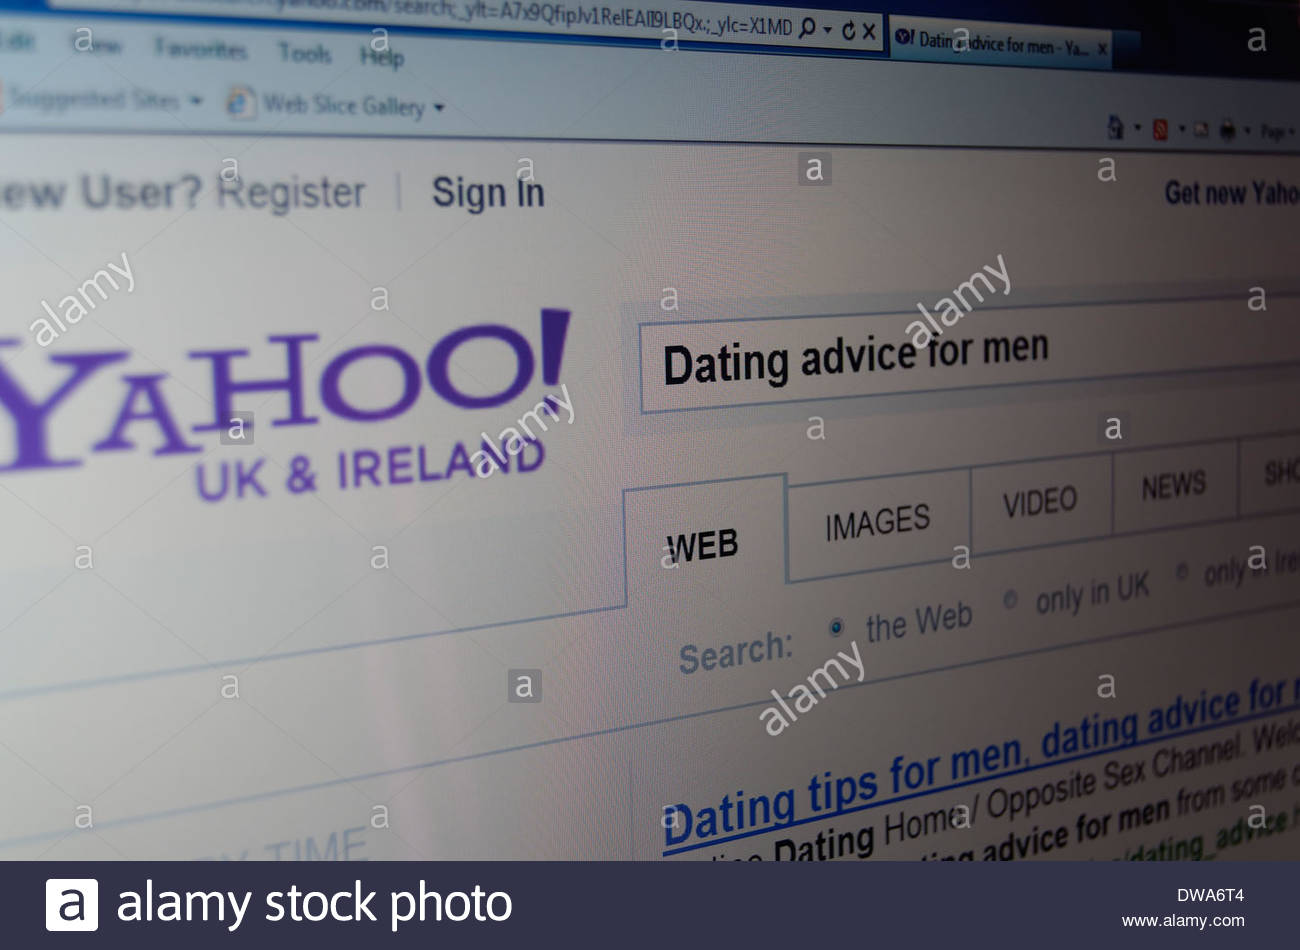 Yahoo dating tips